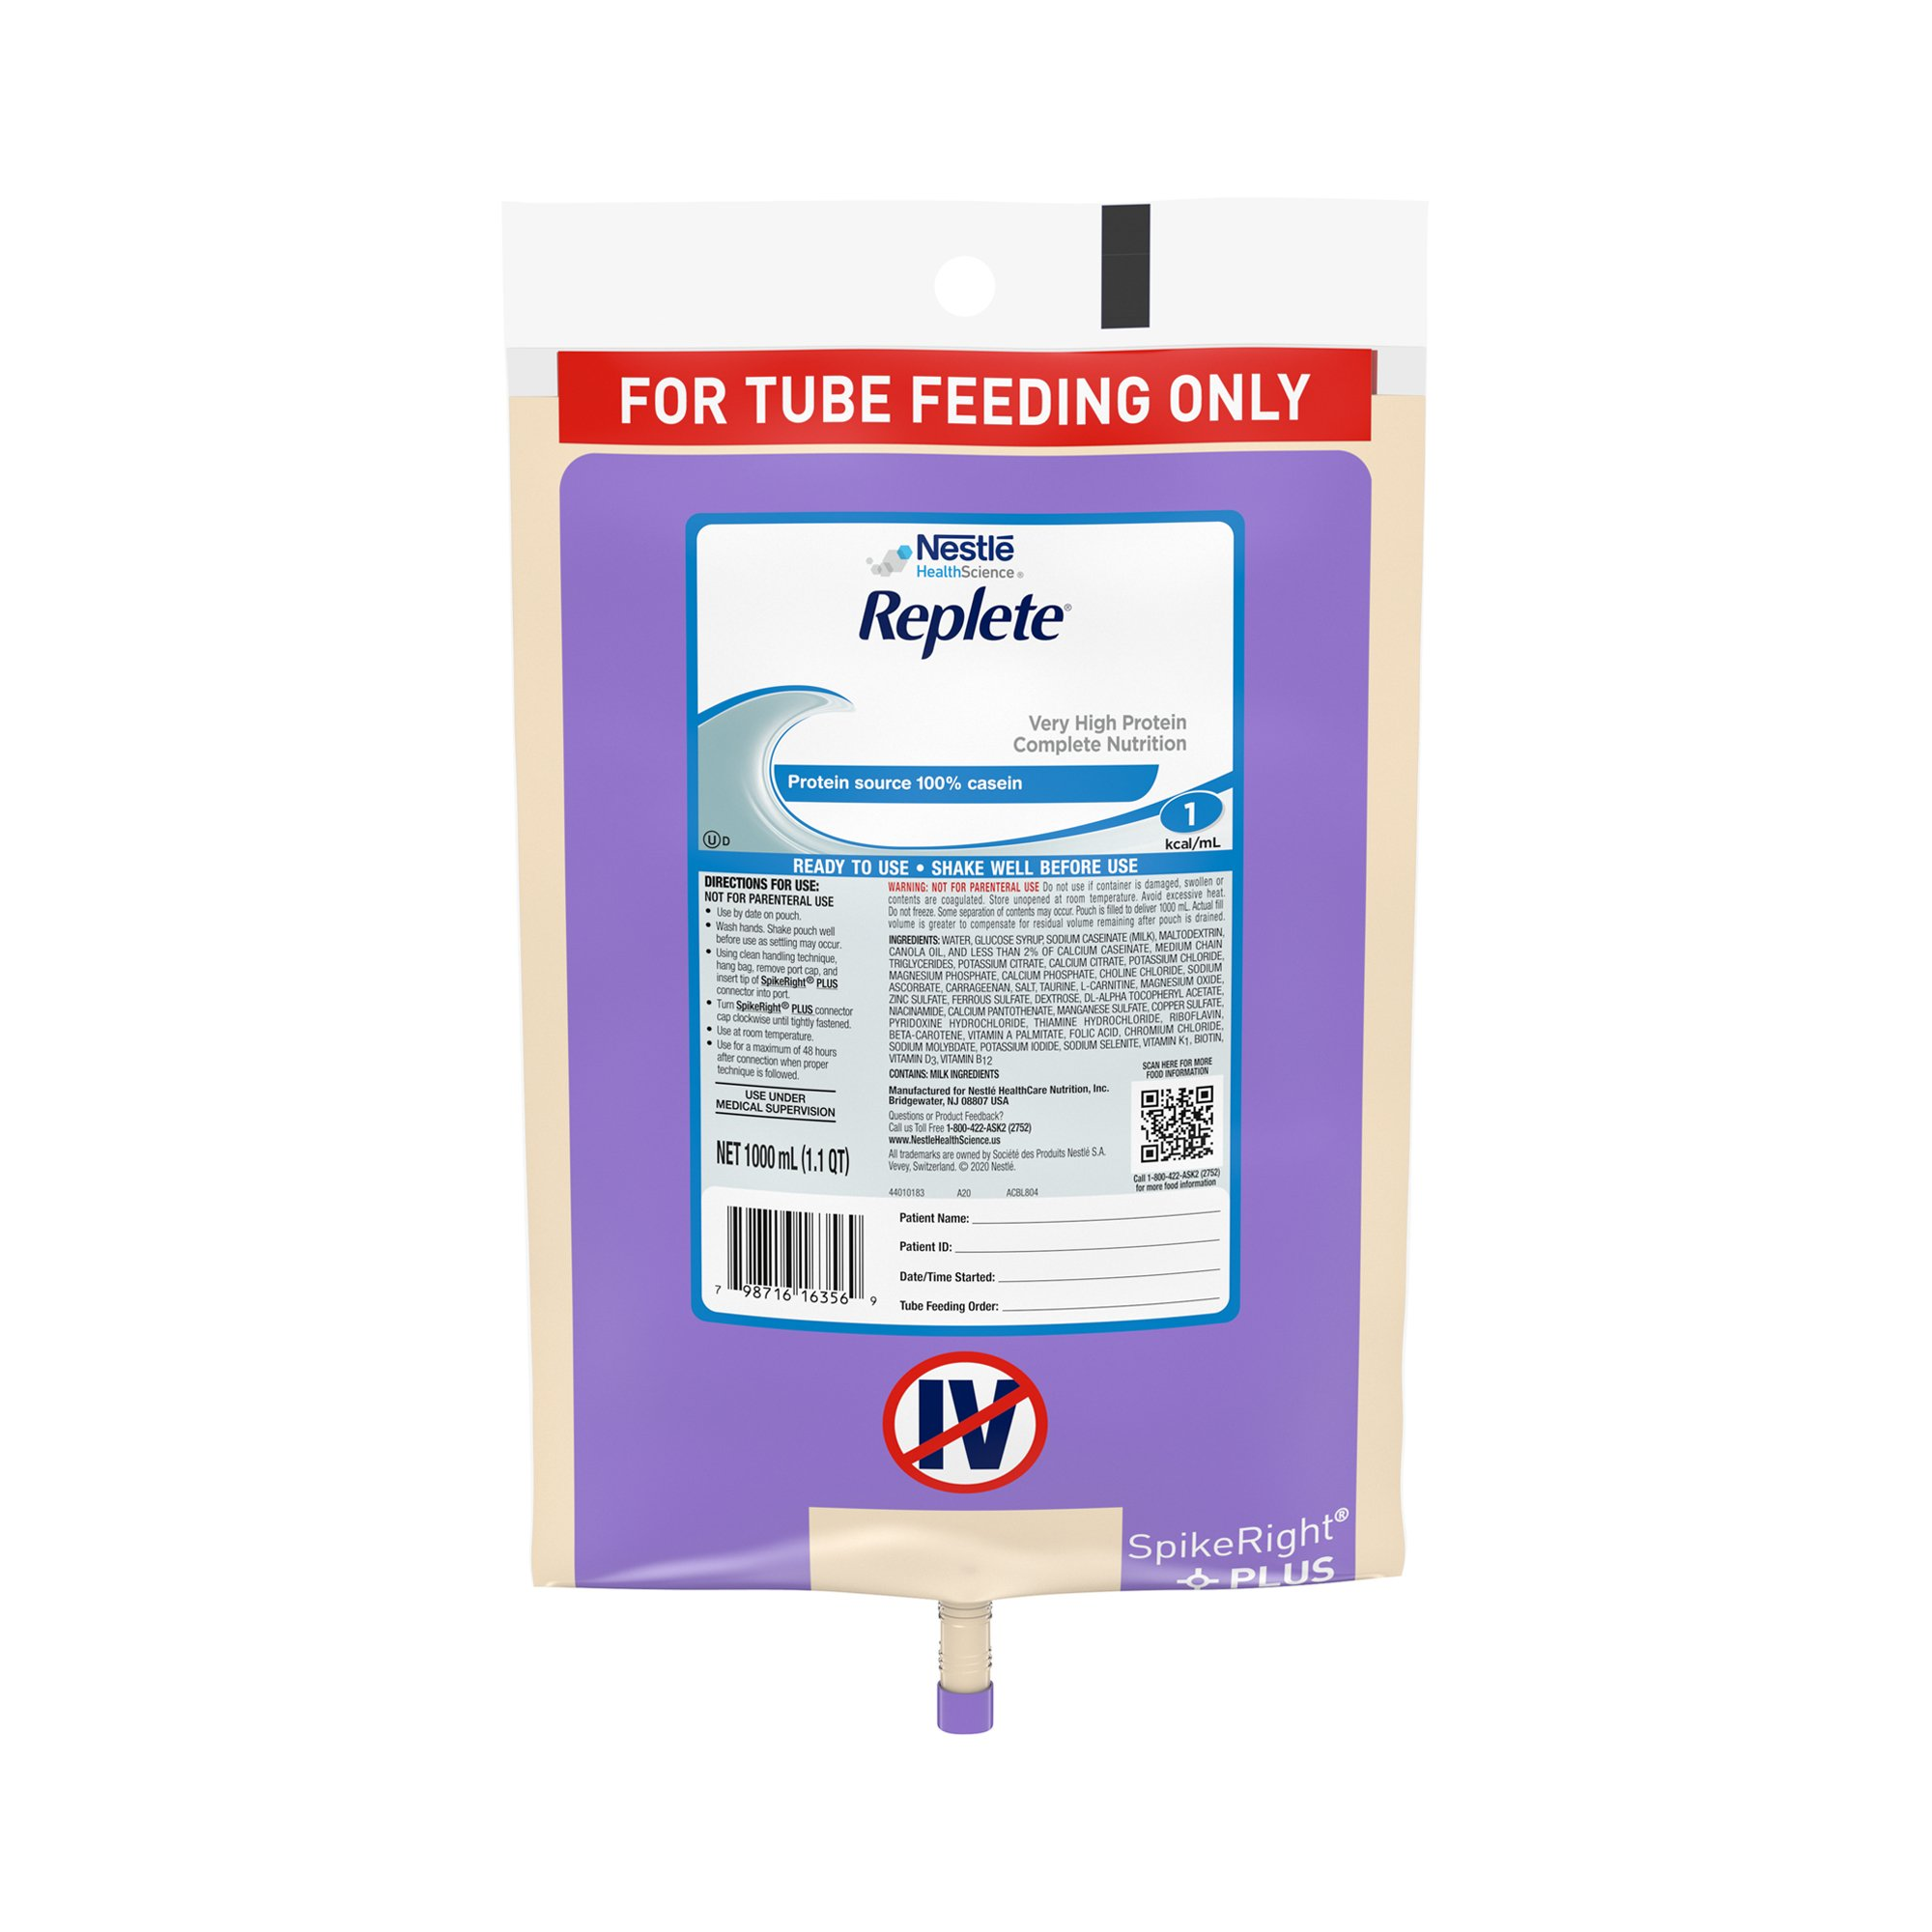 Nestle HealthScience Replete Very High Protein Complete Nutrition Tube Feeding Formula, 33.8 oz. , 10798716263563, Case of 6